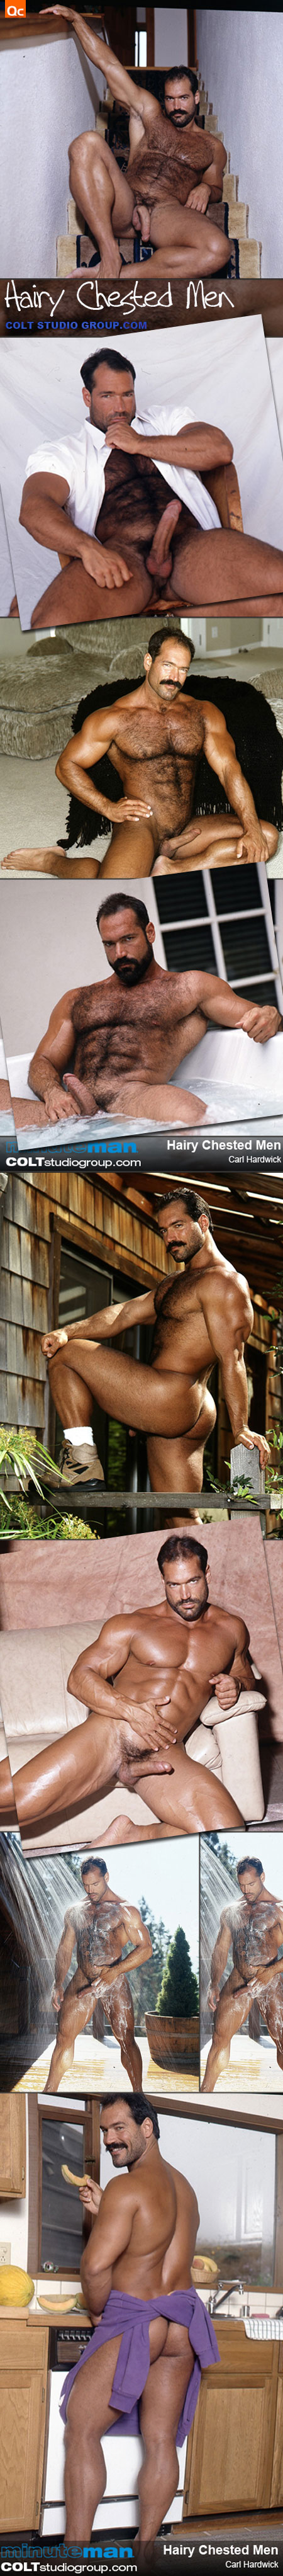 colt studio hairy chested men